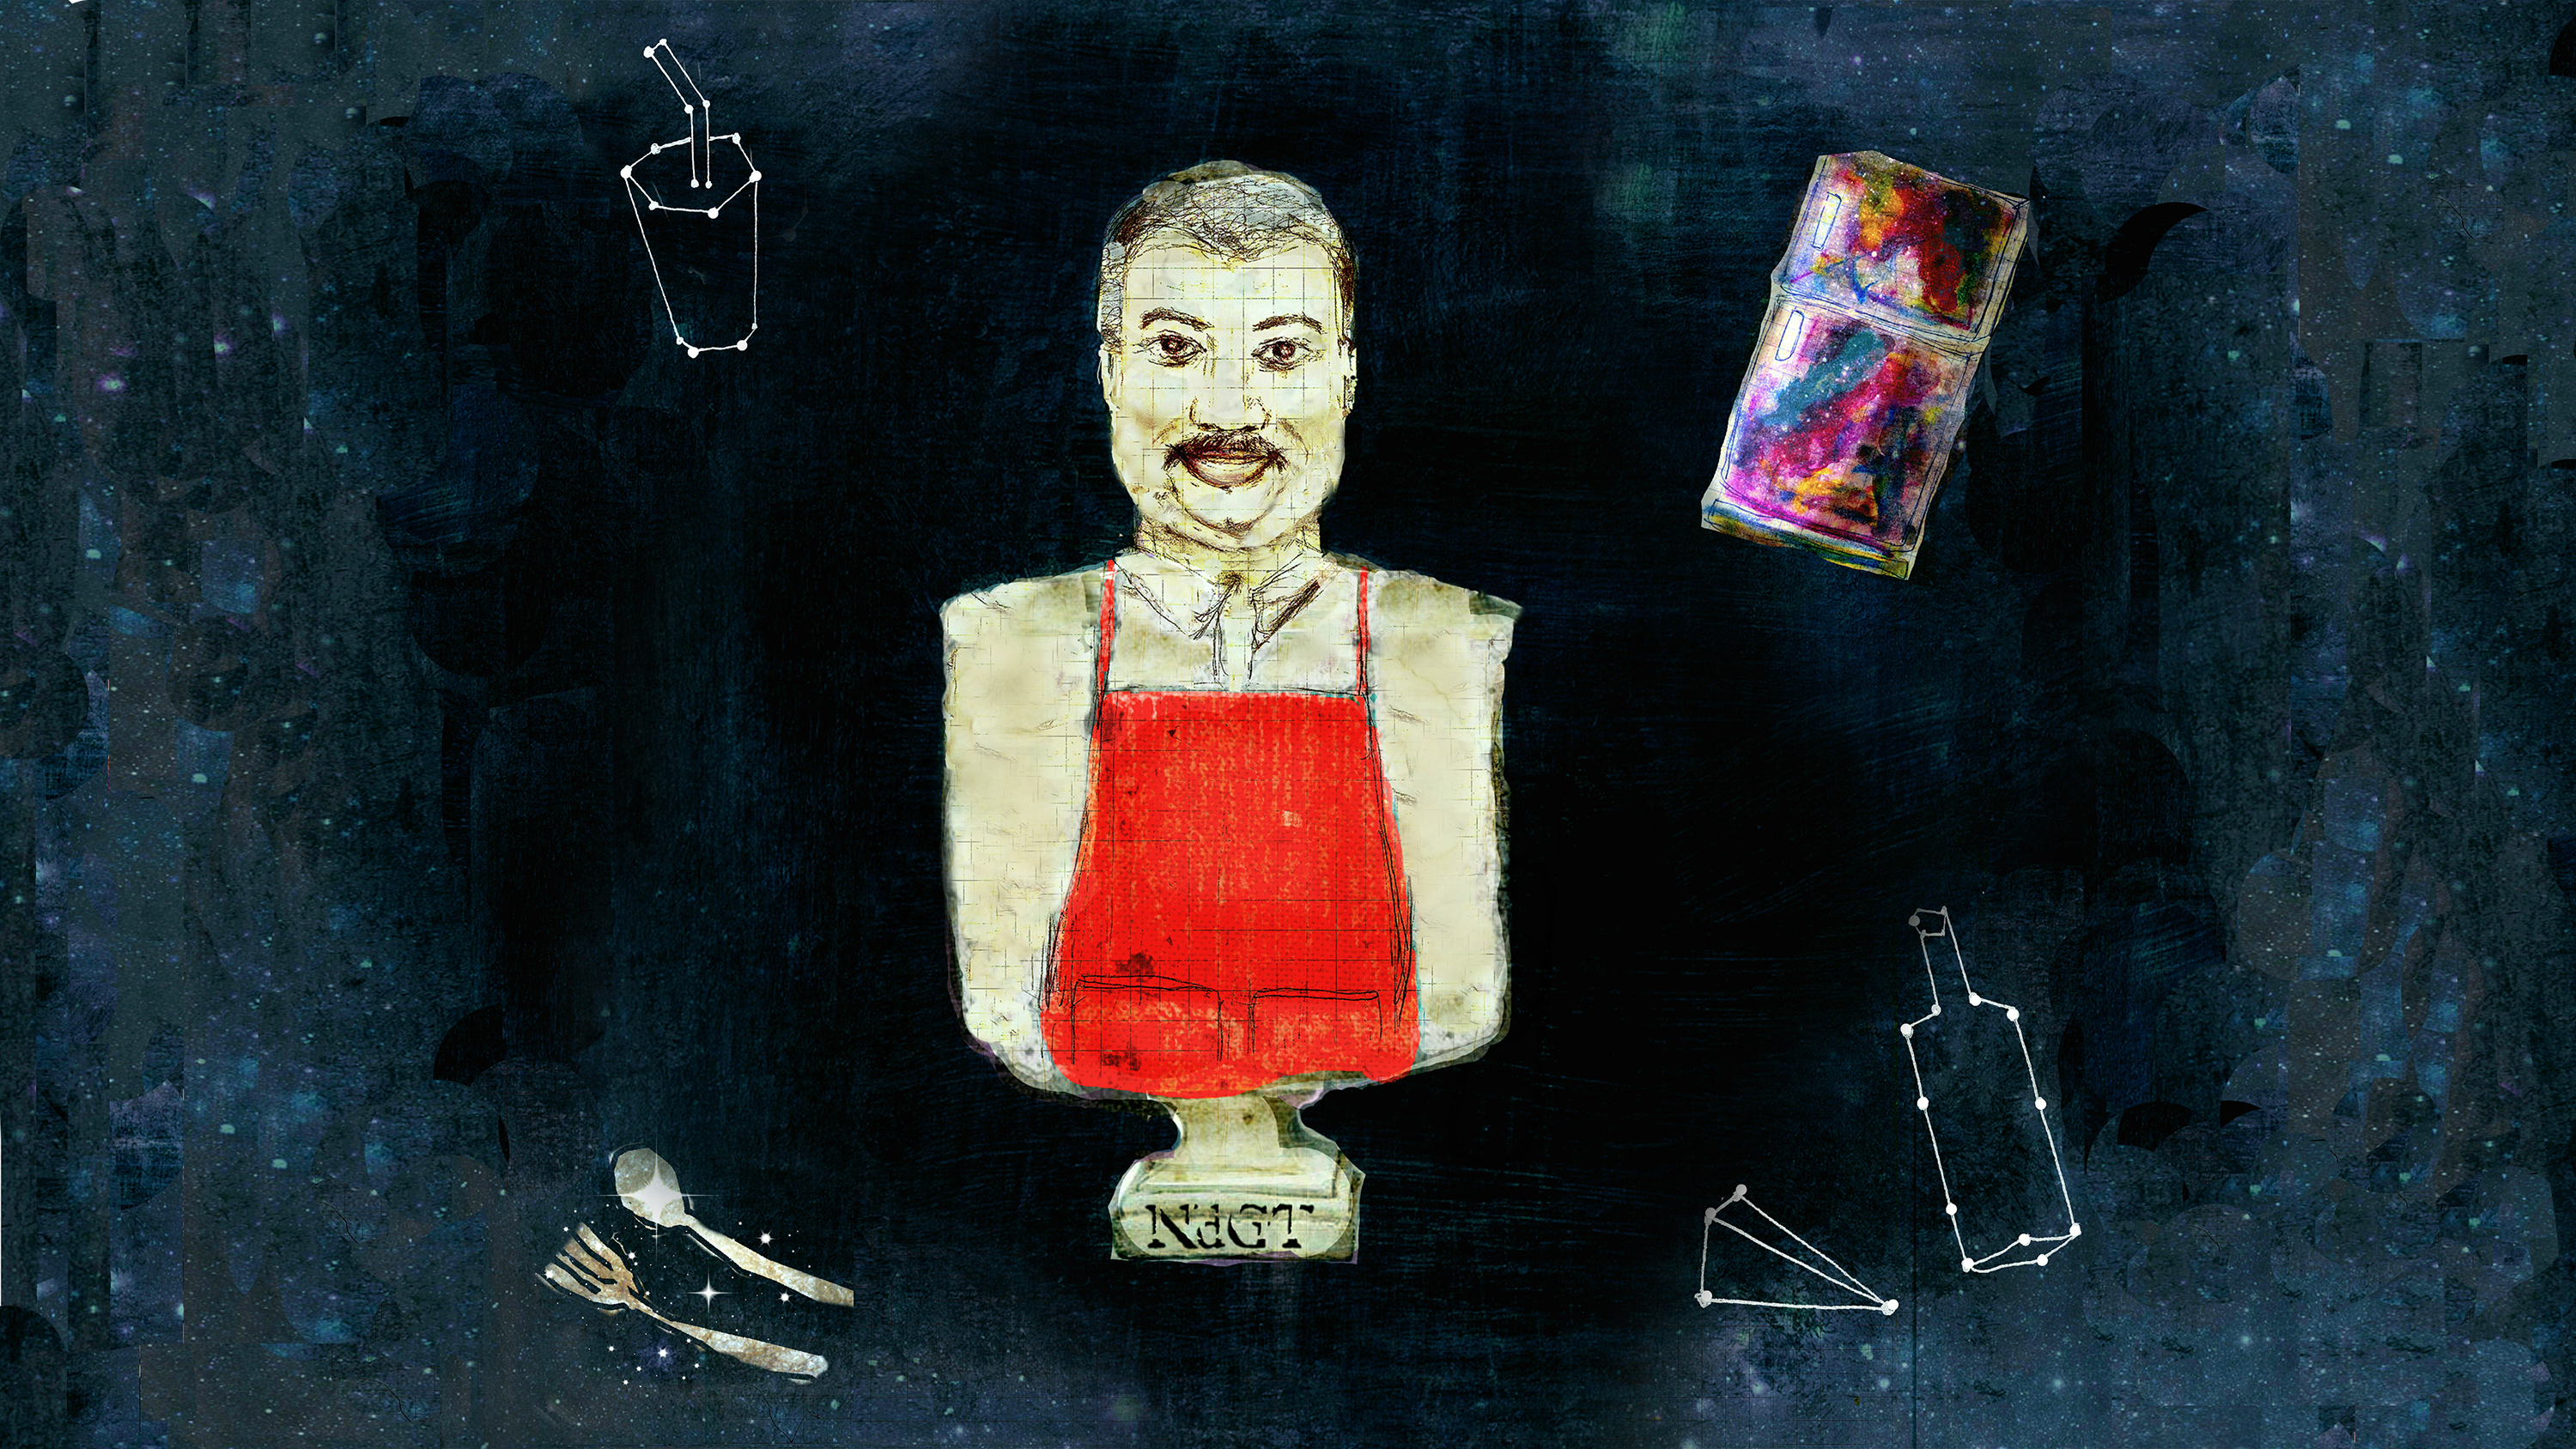 Astrophysicist, Wine Lover, Foodie: The Neil deGrasse Tyson You Didn't Know